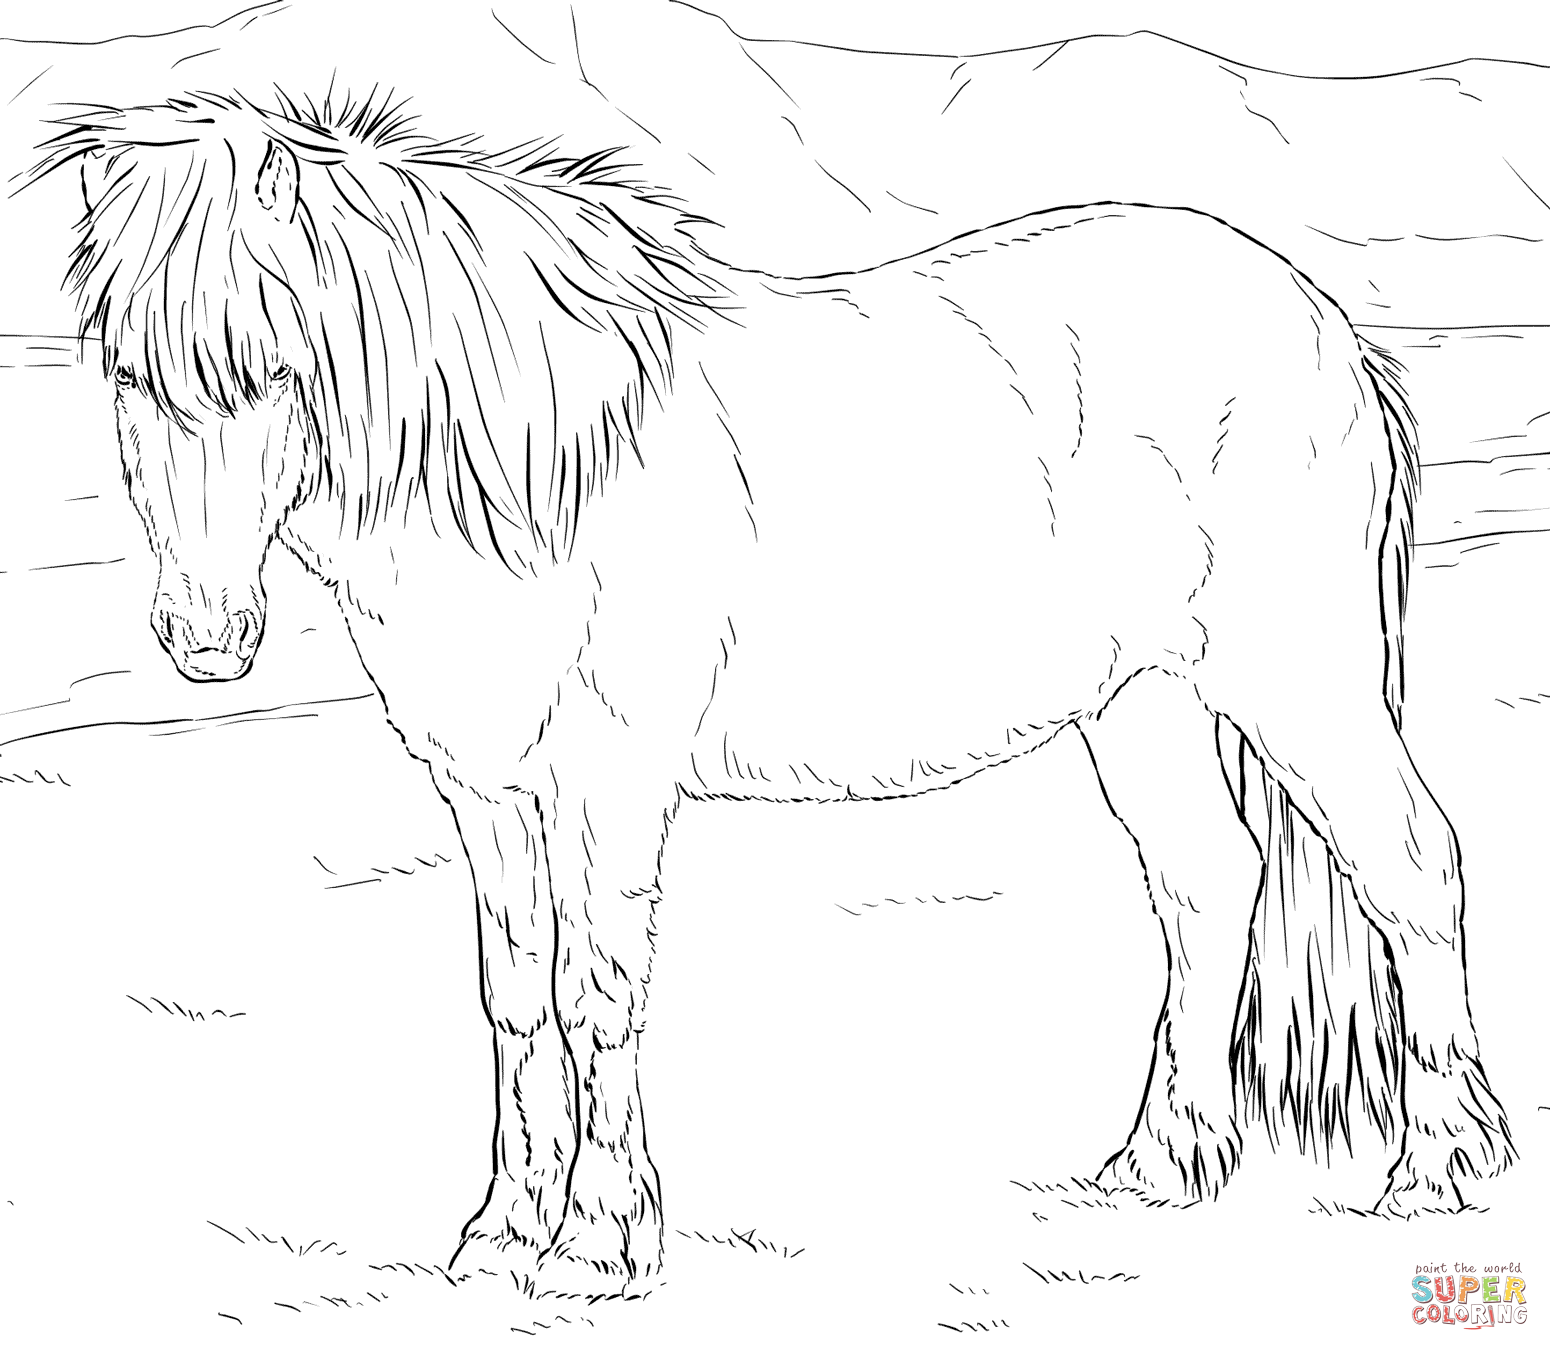 Co co color printouts in bangalore - Co Colourtation Anti Stress Colouring Book For Adults Volume 1 Download Horse Coloring Printouts